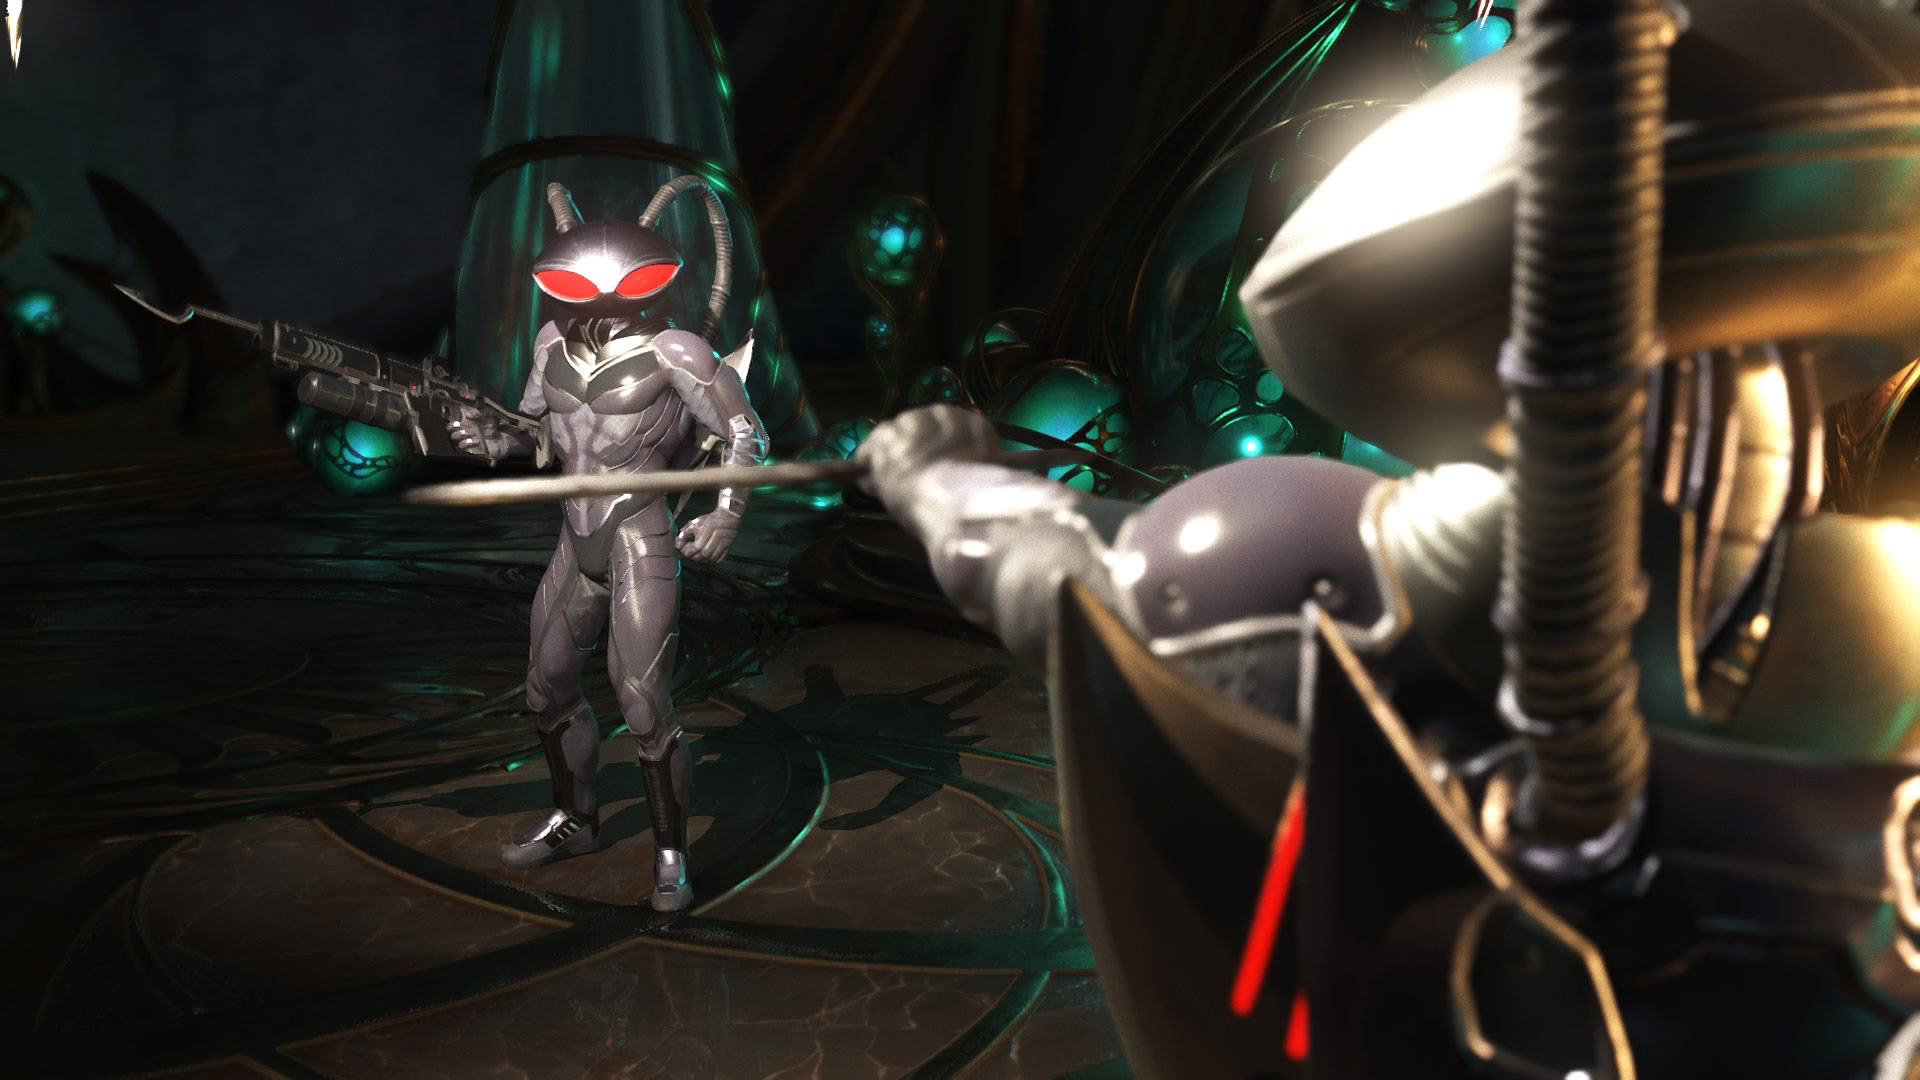 Black Manta screenshots in Injustice 2 6 out of 7 image gallery